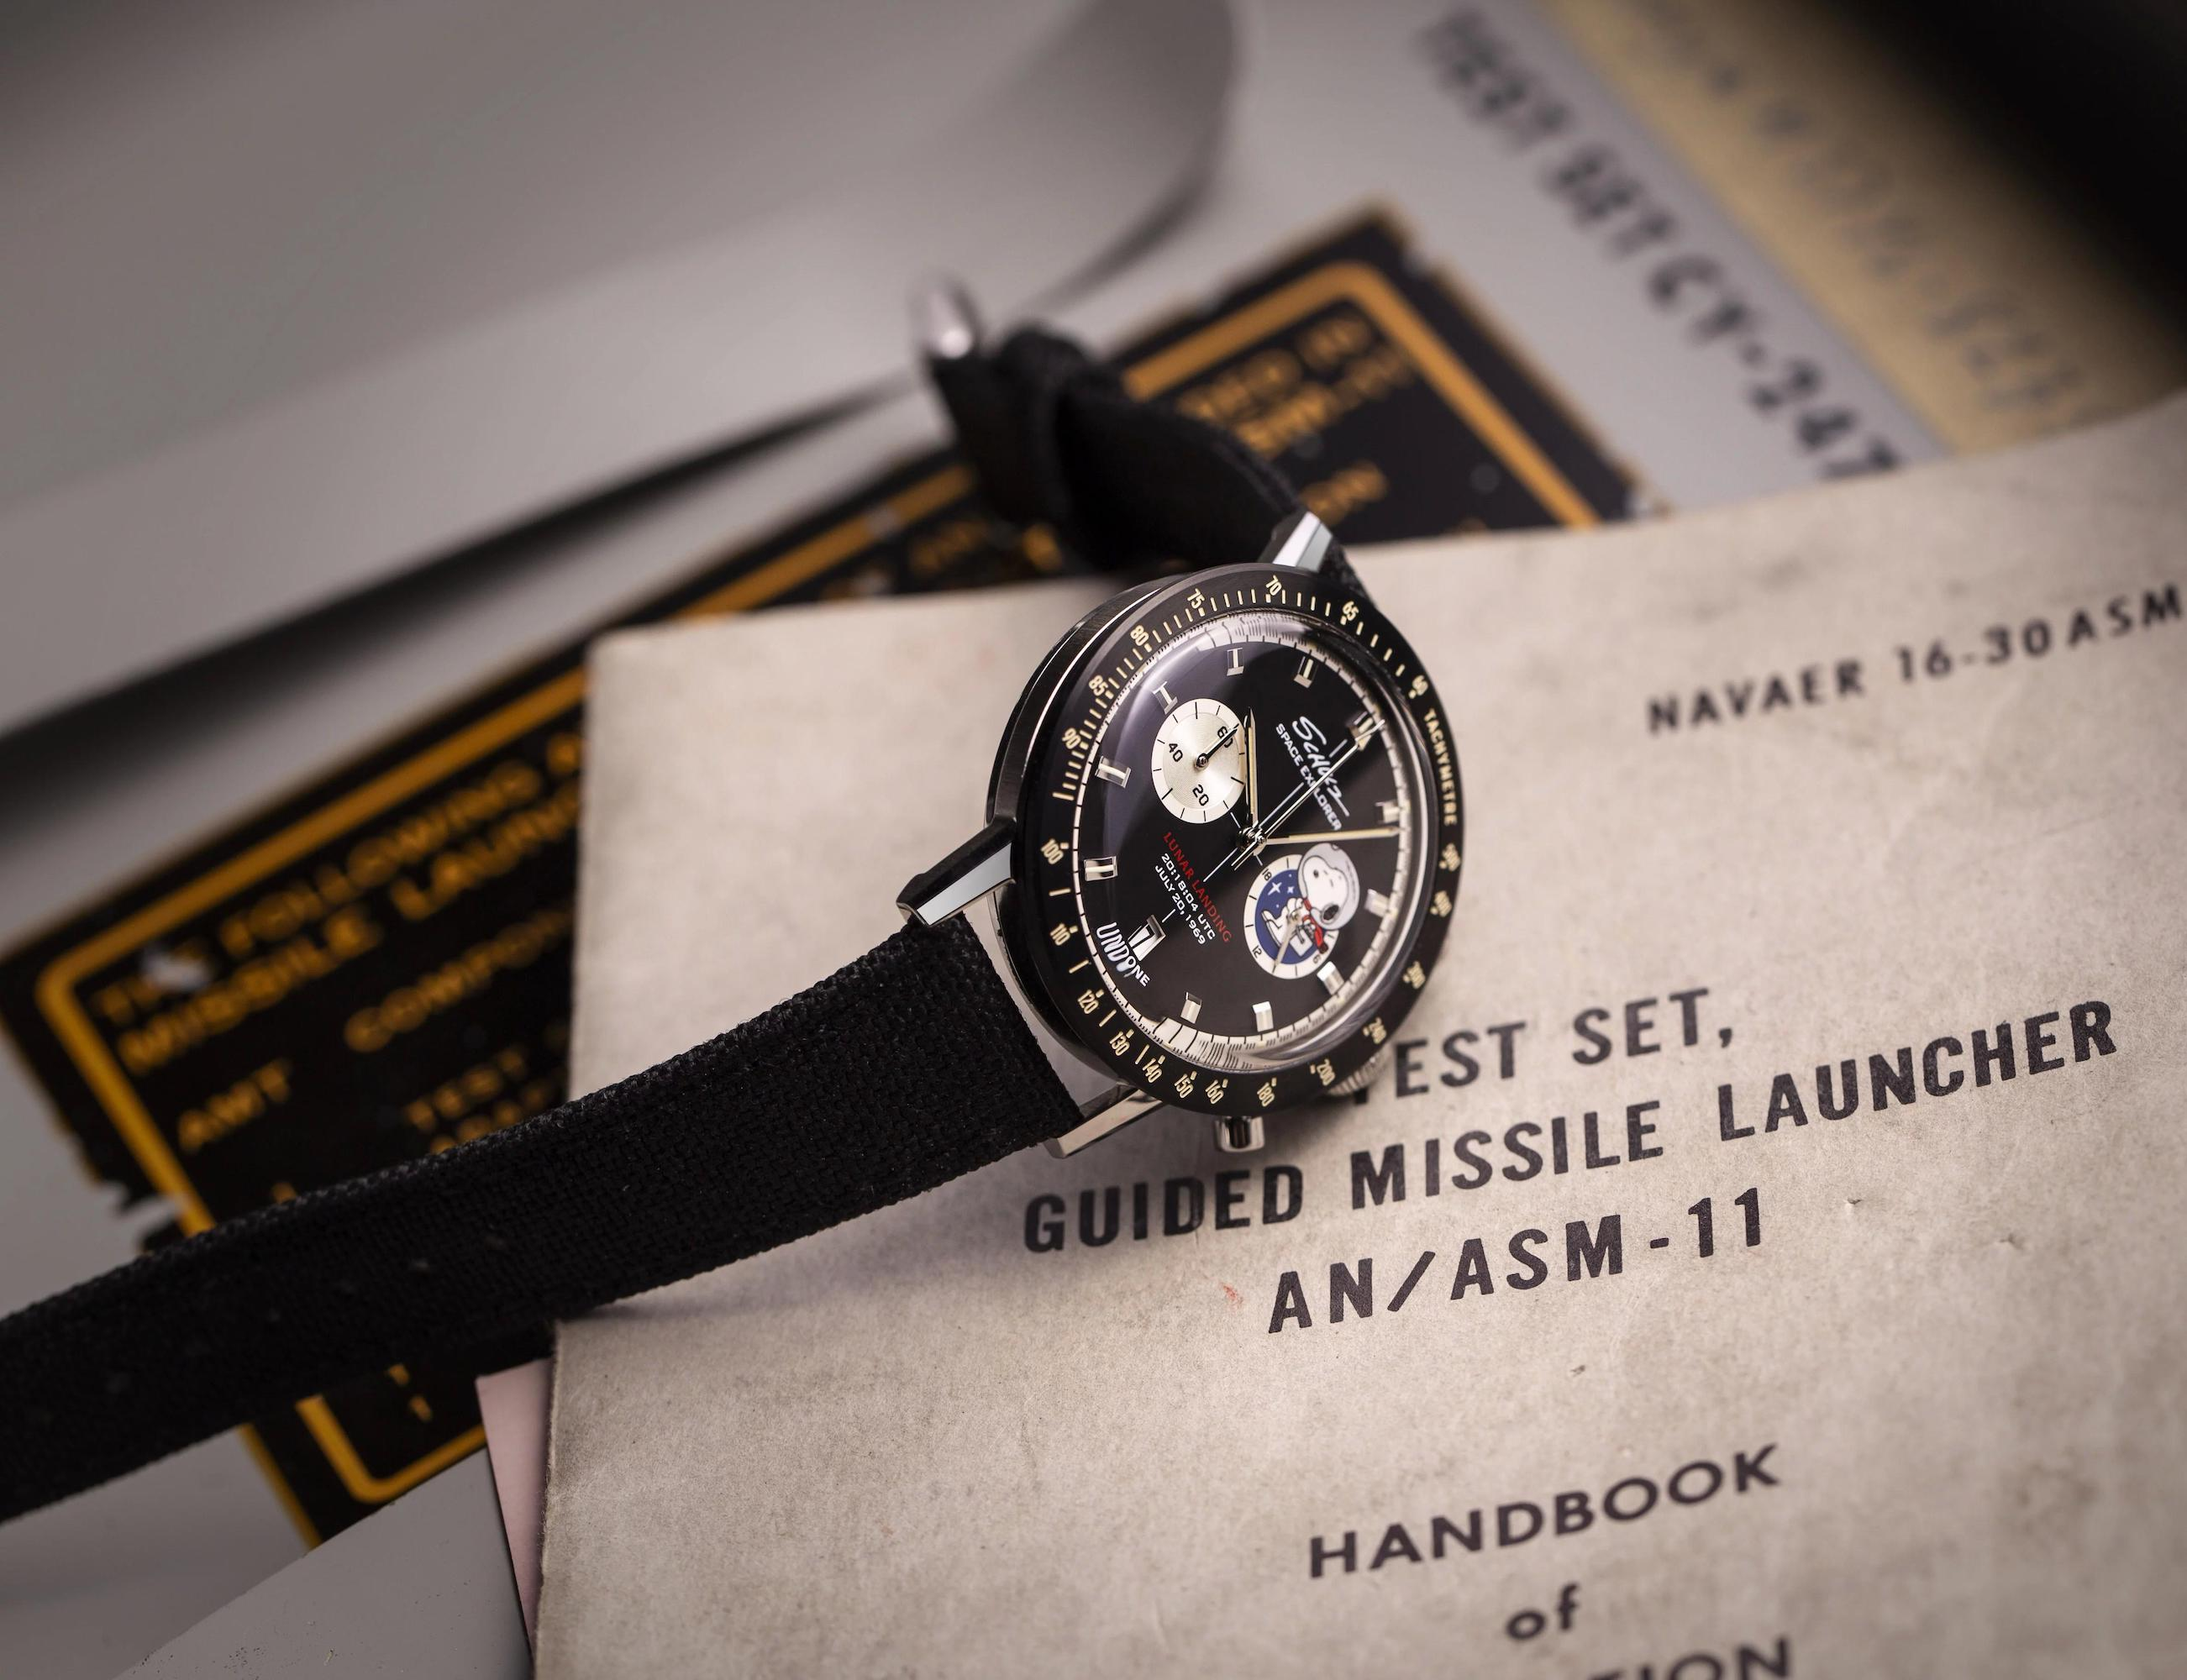 apollo 11 space mission watch - photo #39